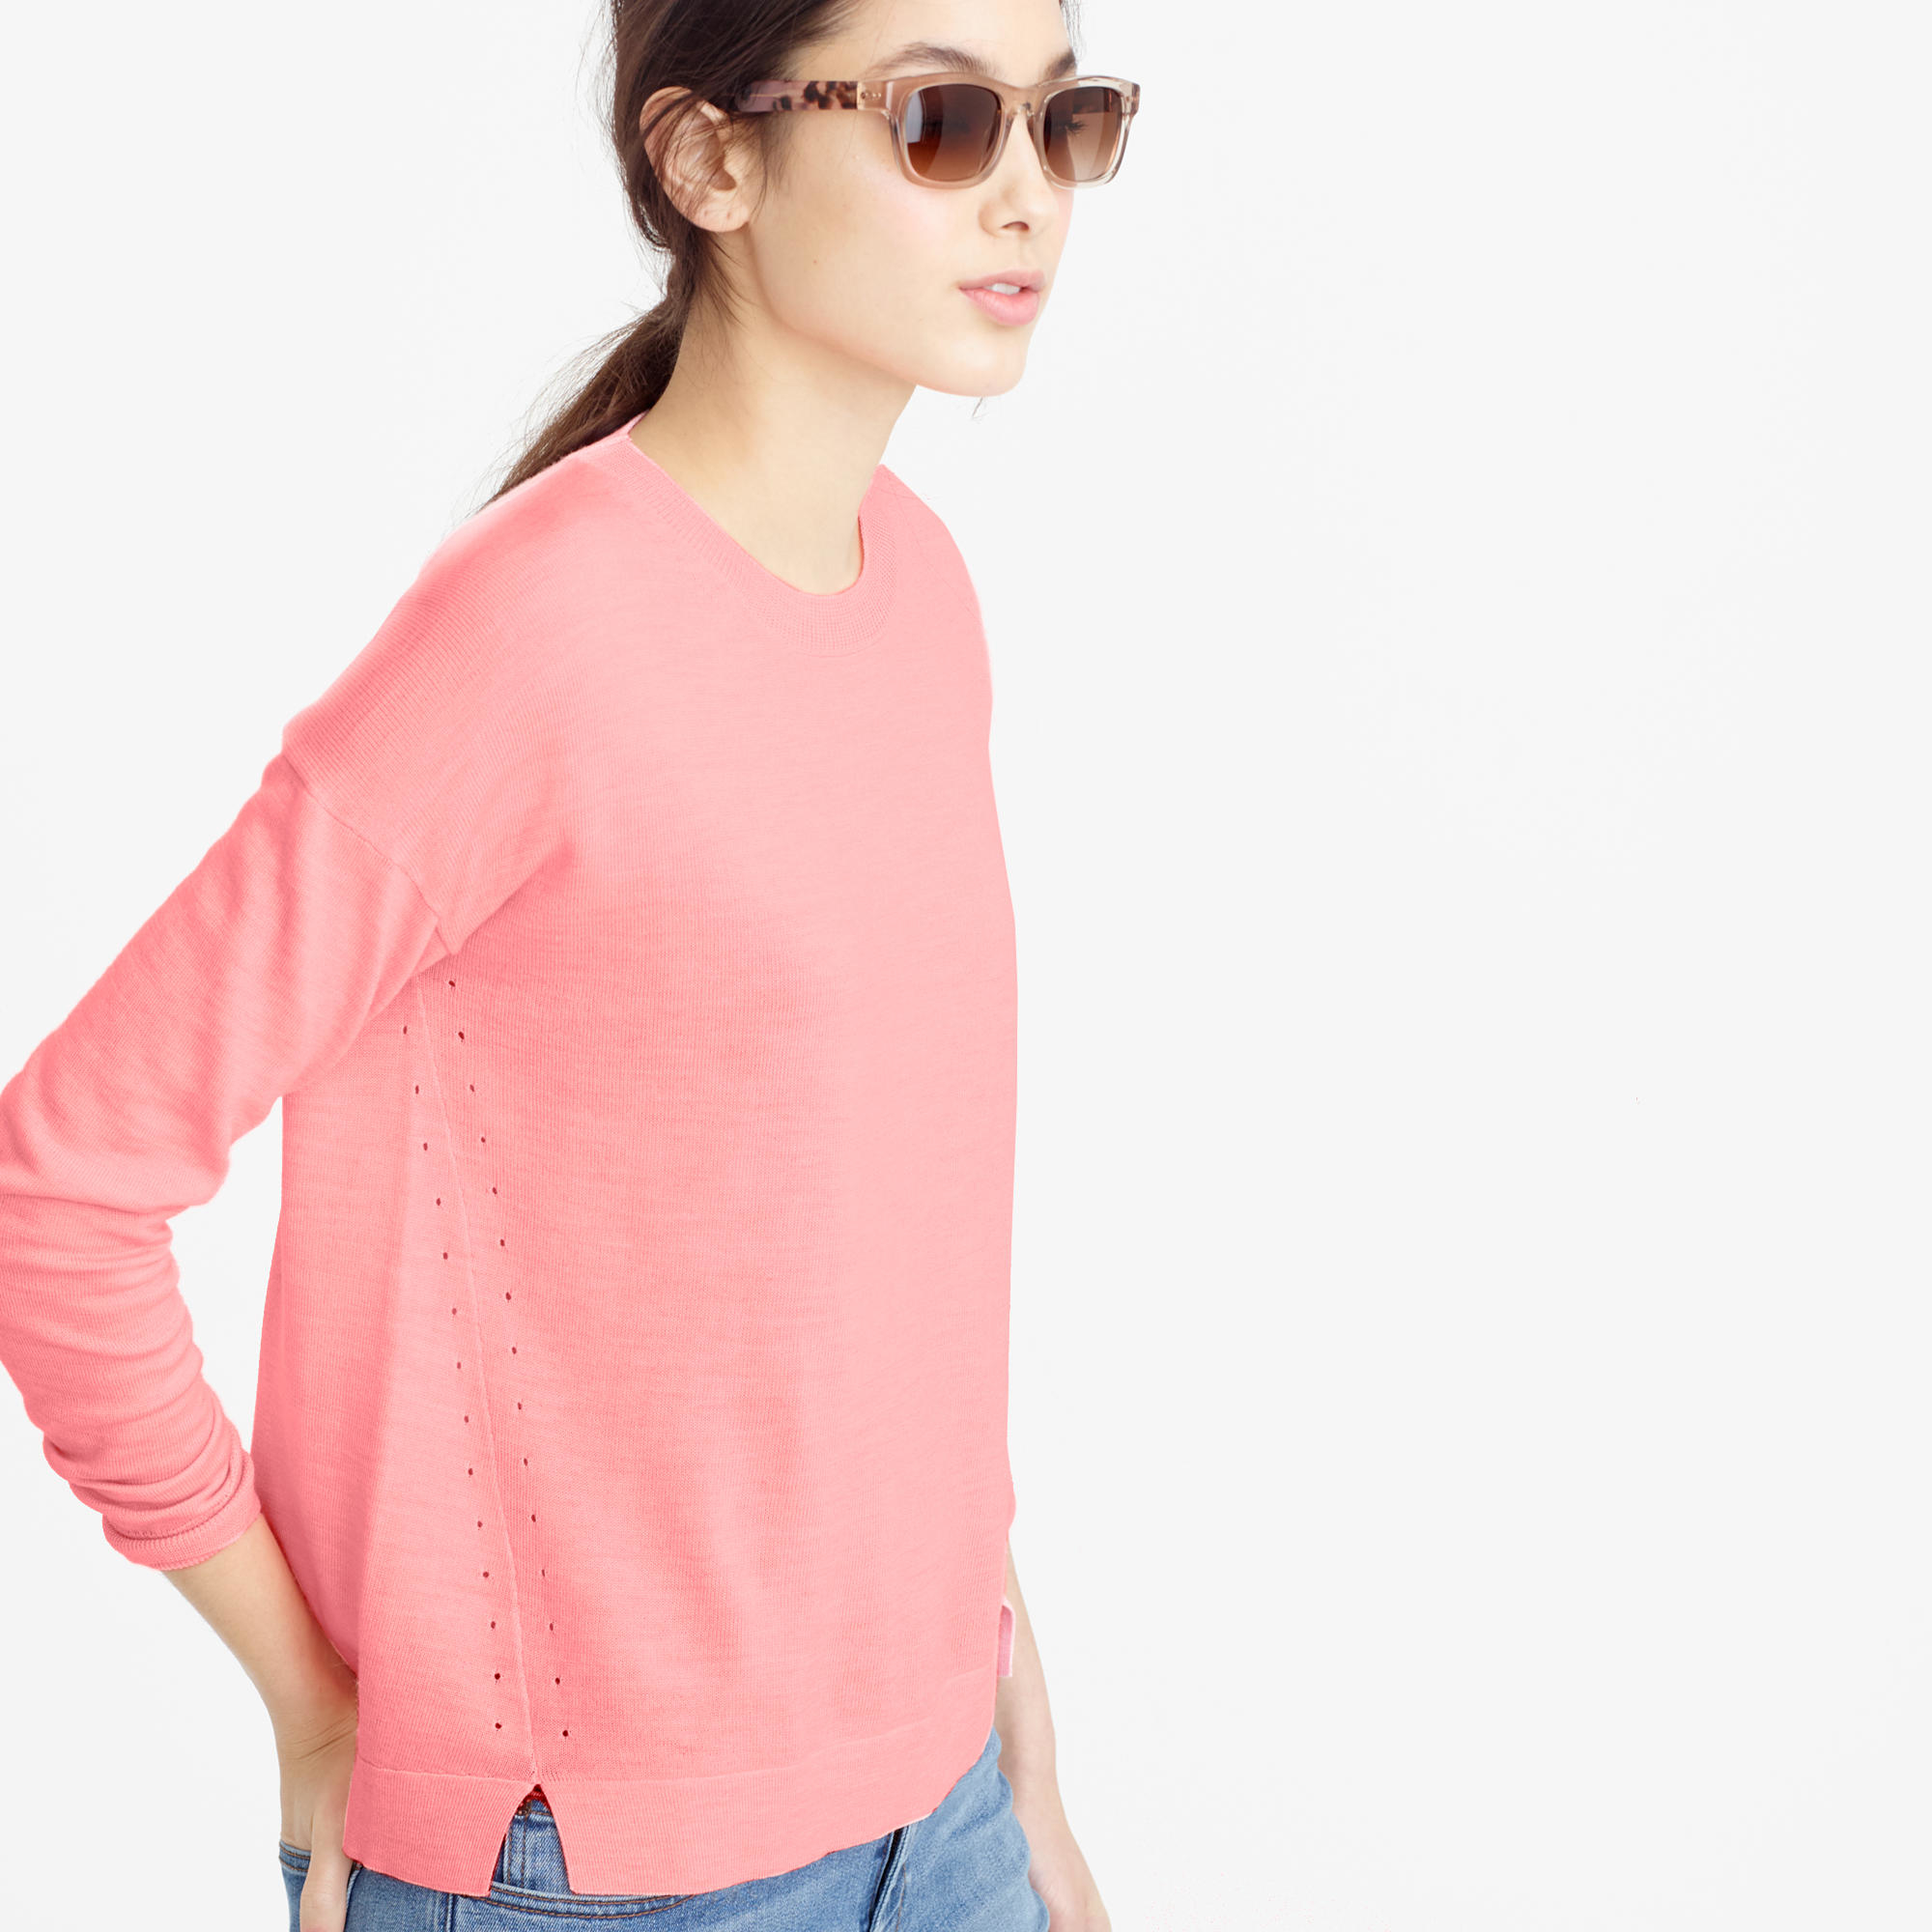 J.crew Lightweight Wool Tunic Sweater in Pink | Lyst